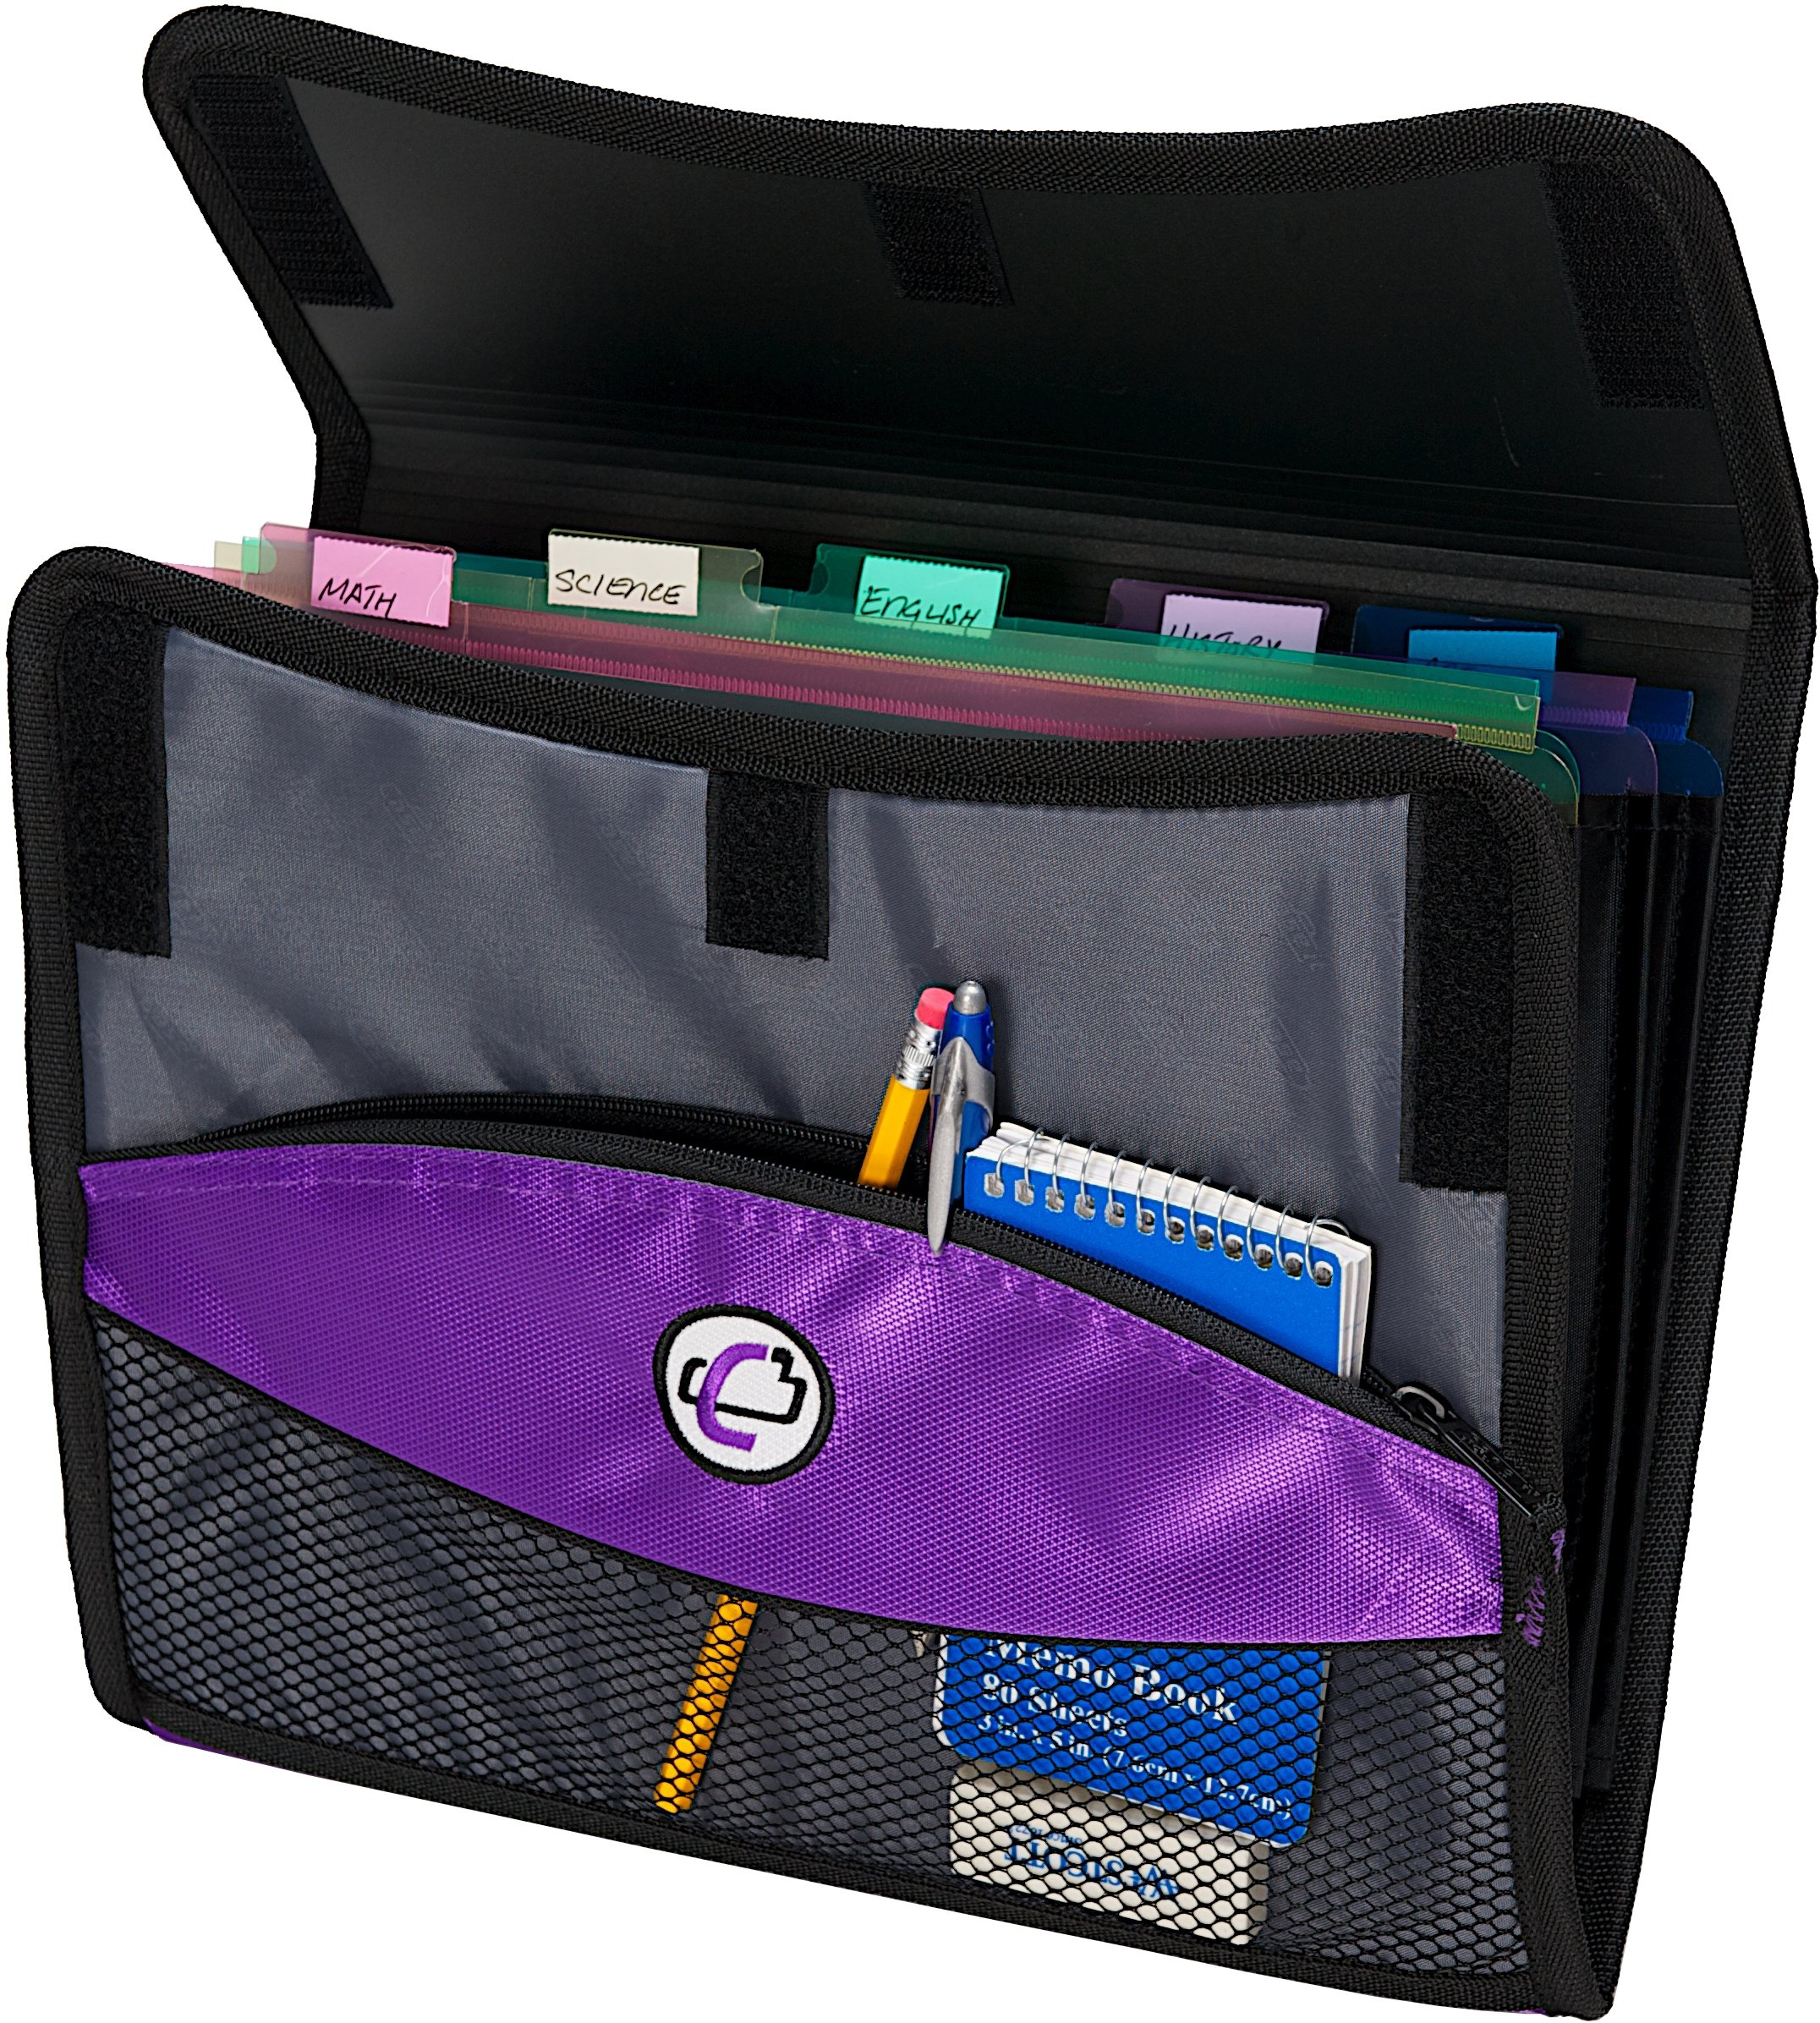 Case-it Sidekick 2-Inch O-Ring Zipper Binder with Removable Tab File, Purple, D-901-PUR by Case-It (Image #5)